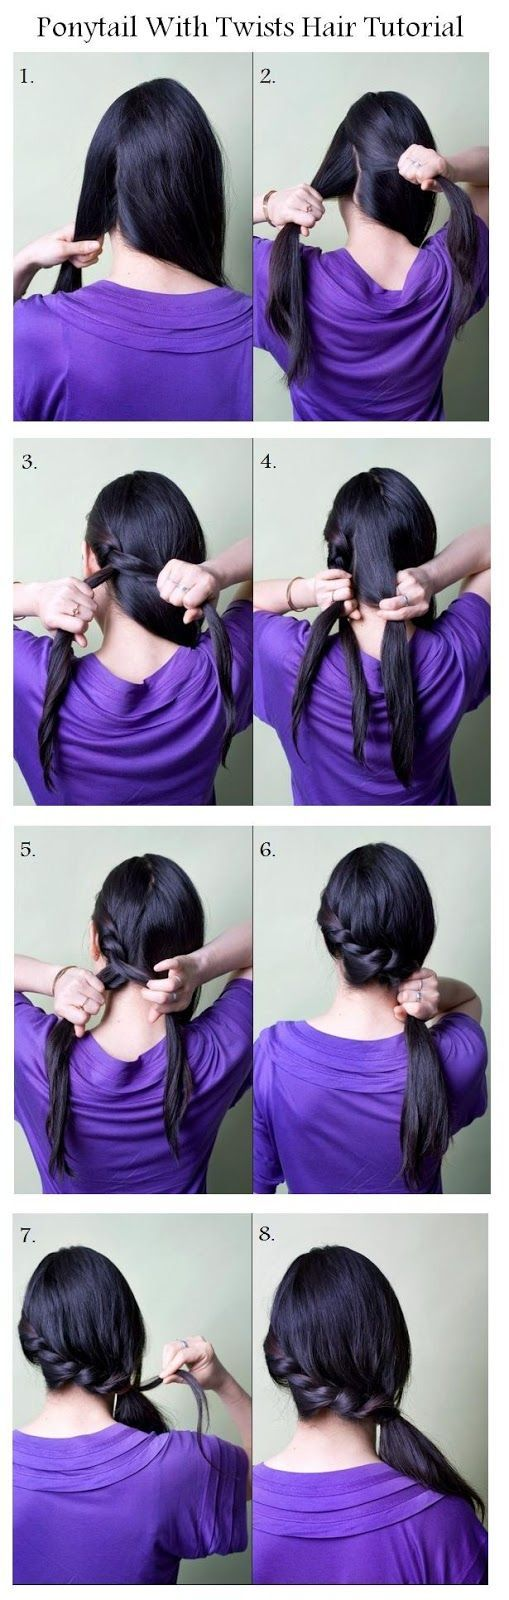 Braid ponytails